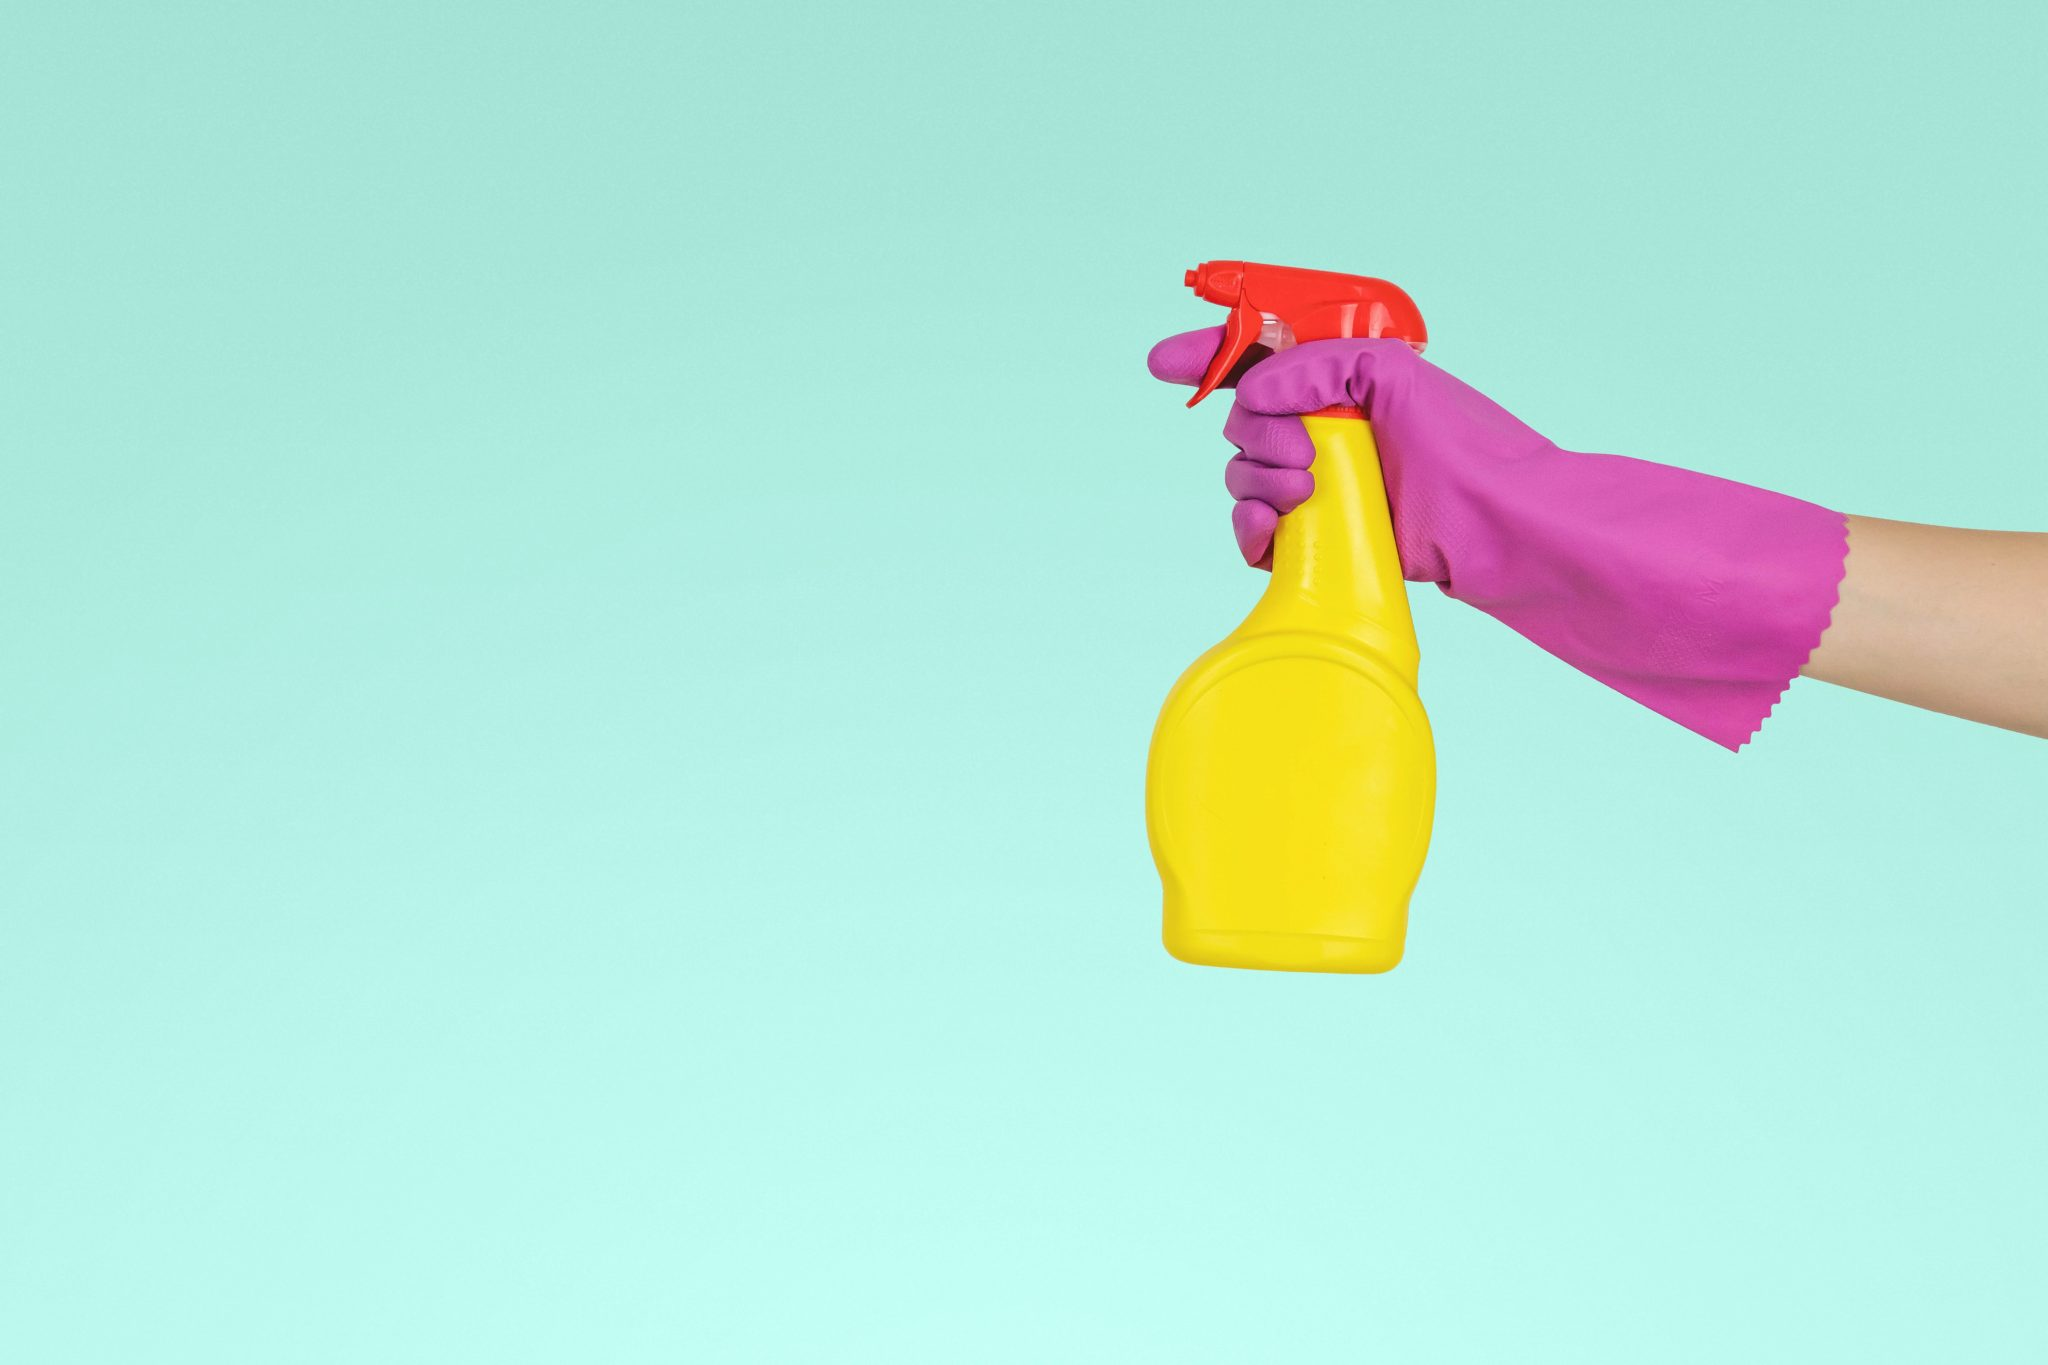 person wearing a purple glove and spraying a disinfectant in a yellow bottle